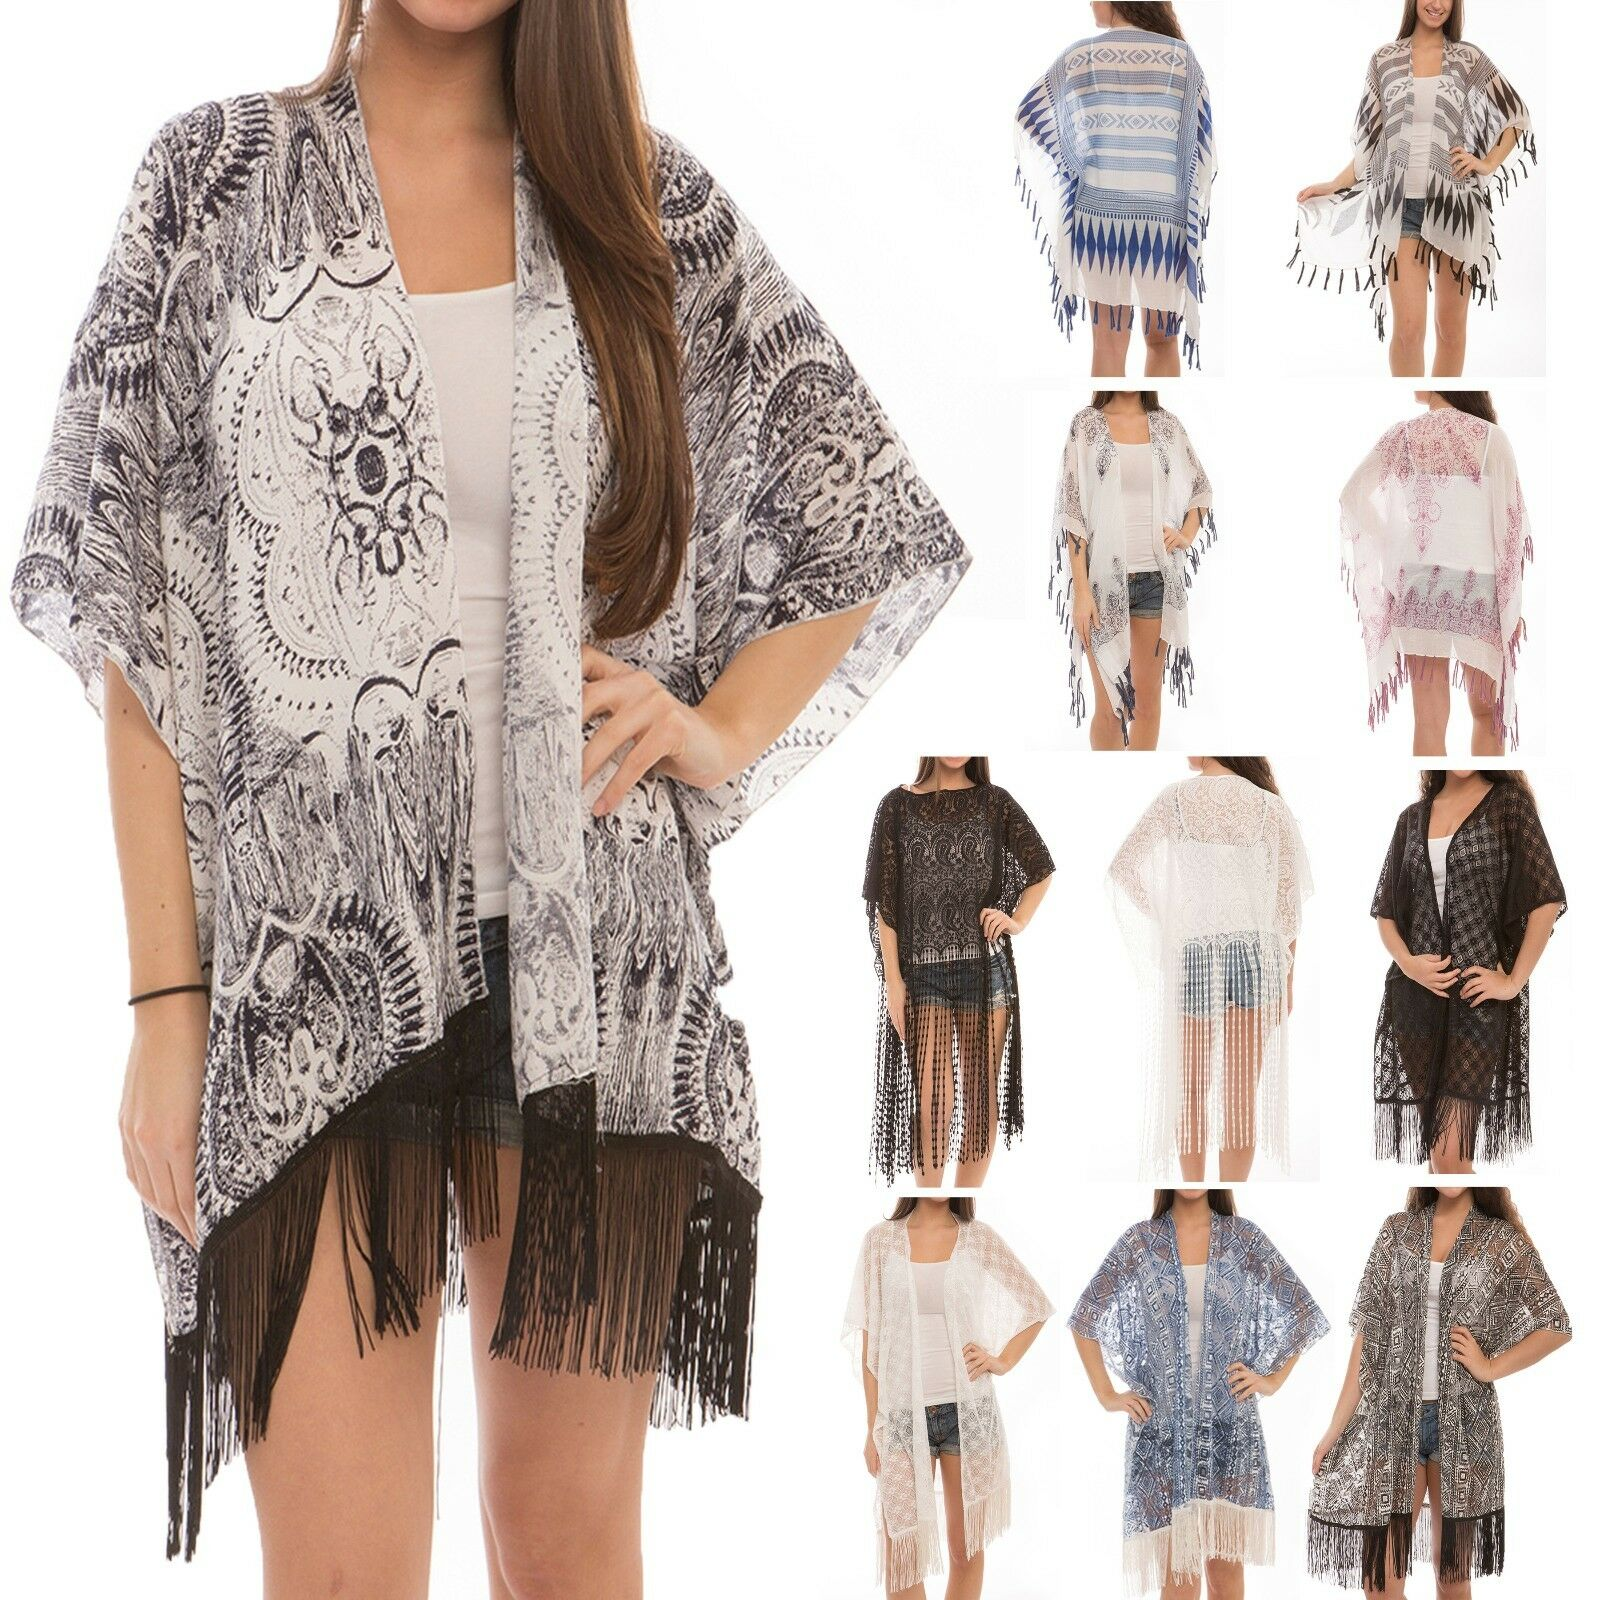 Women's Fashion Swimwear CoverUps Top Dress Chiffon Kimono C